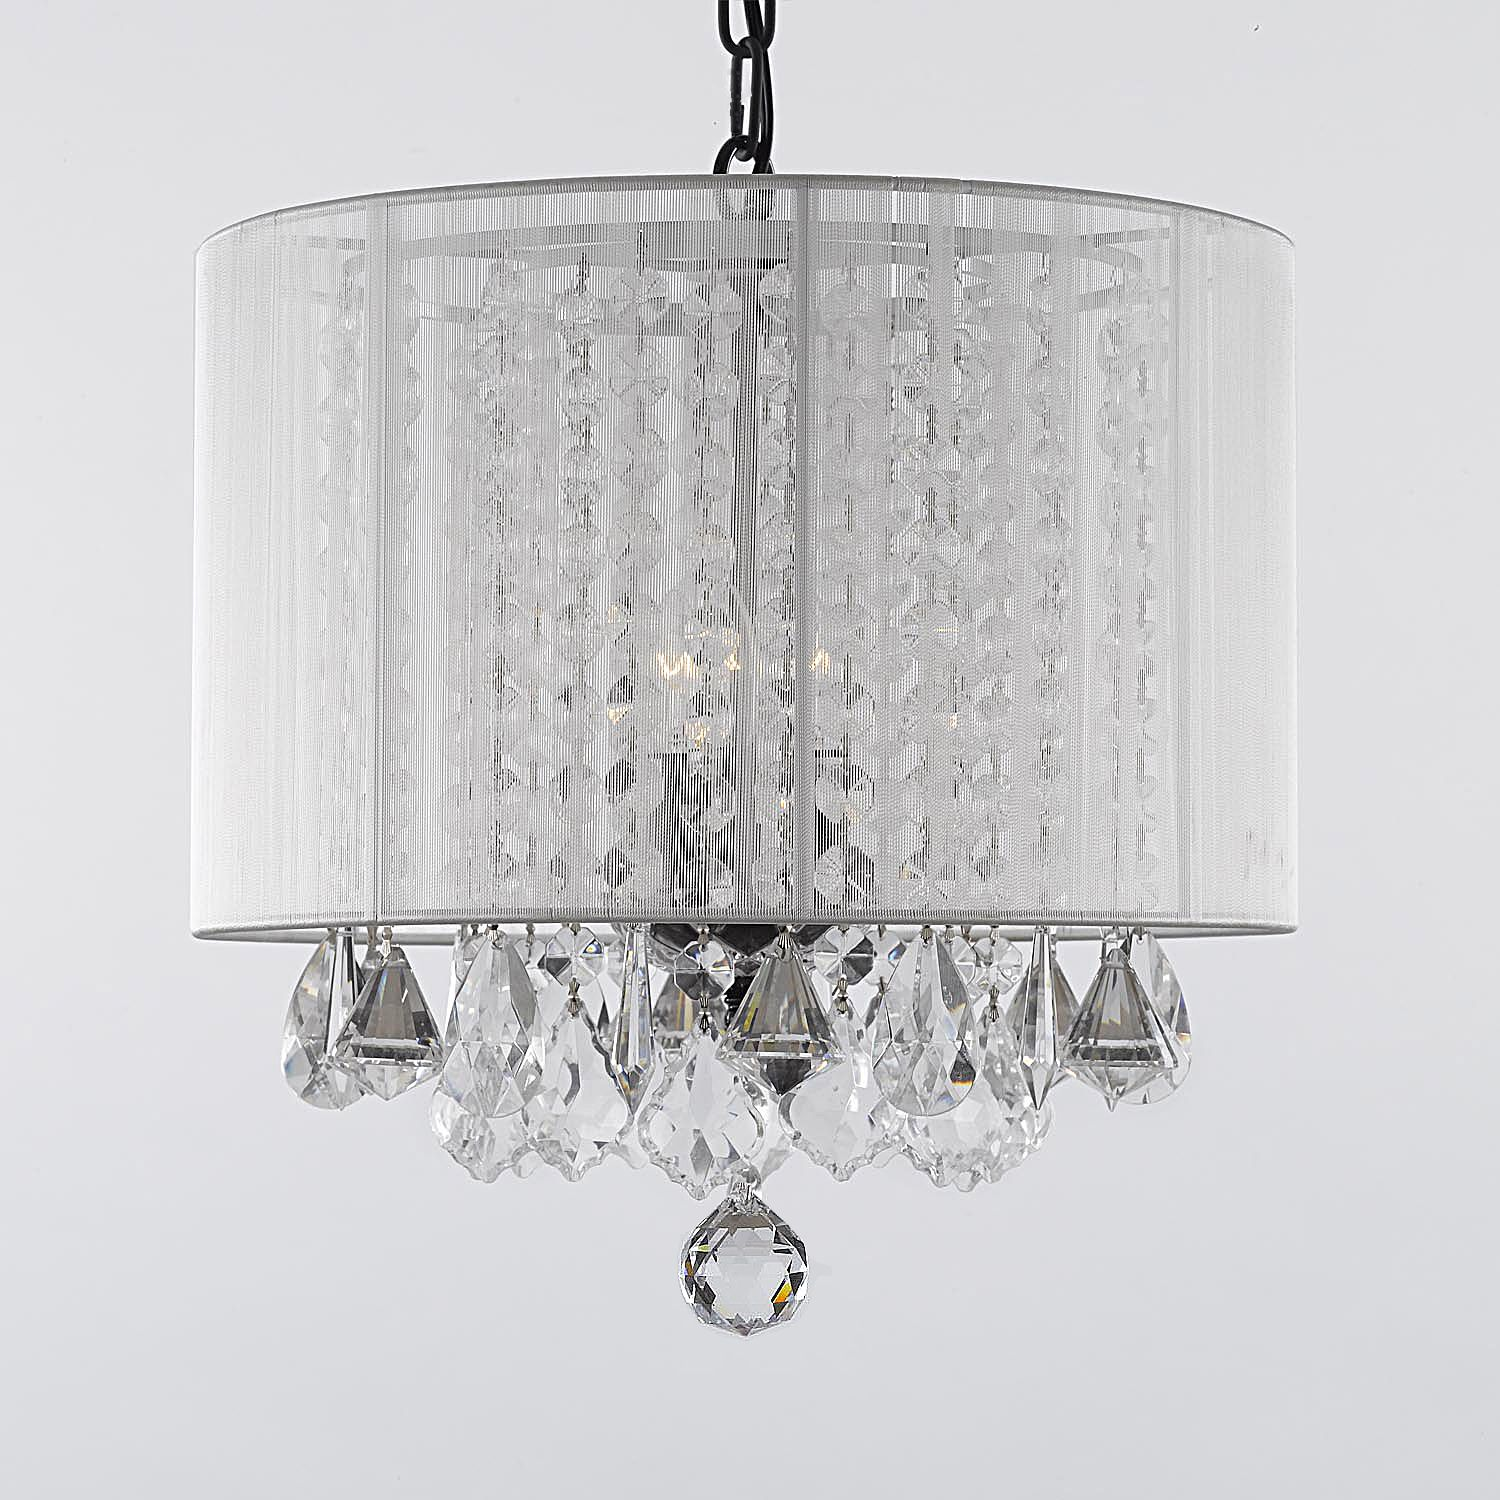 G7 whitesm6043 gallery chandeliers with shades crystal chandelier g7 whitesm6043 gallery chandeliers with shades crystal chandelier with arubaitofo Gallery